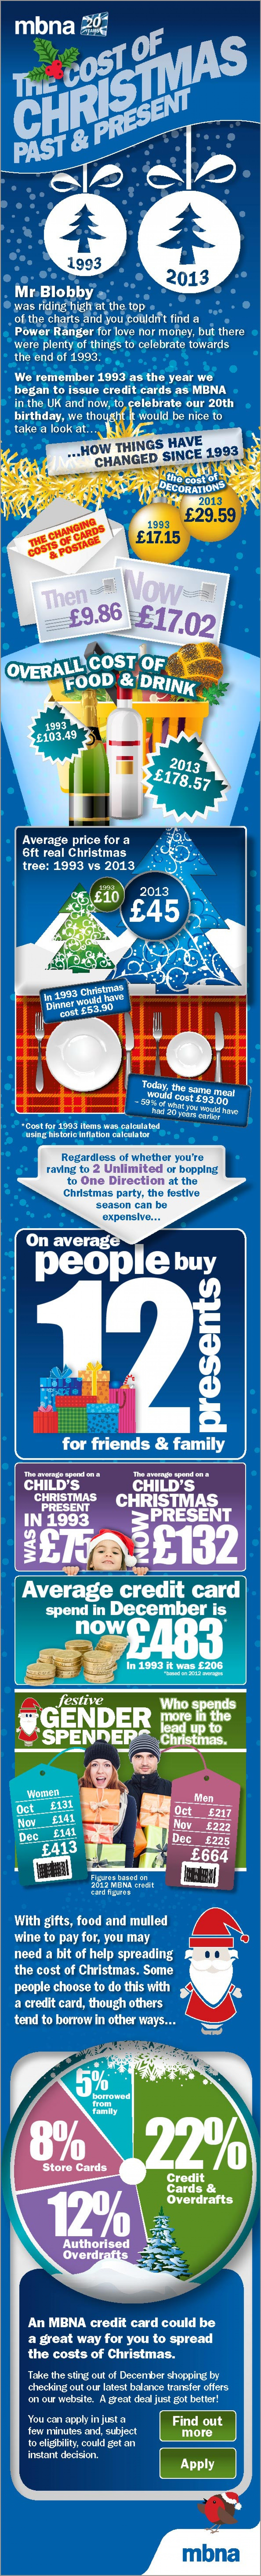 MBNA Infographic the Cost of Chrismas Past and Present Infographic